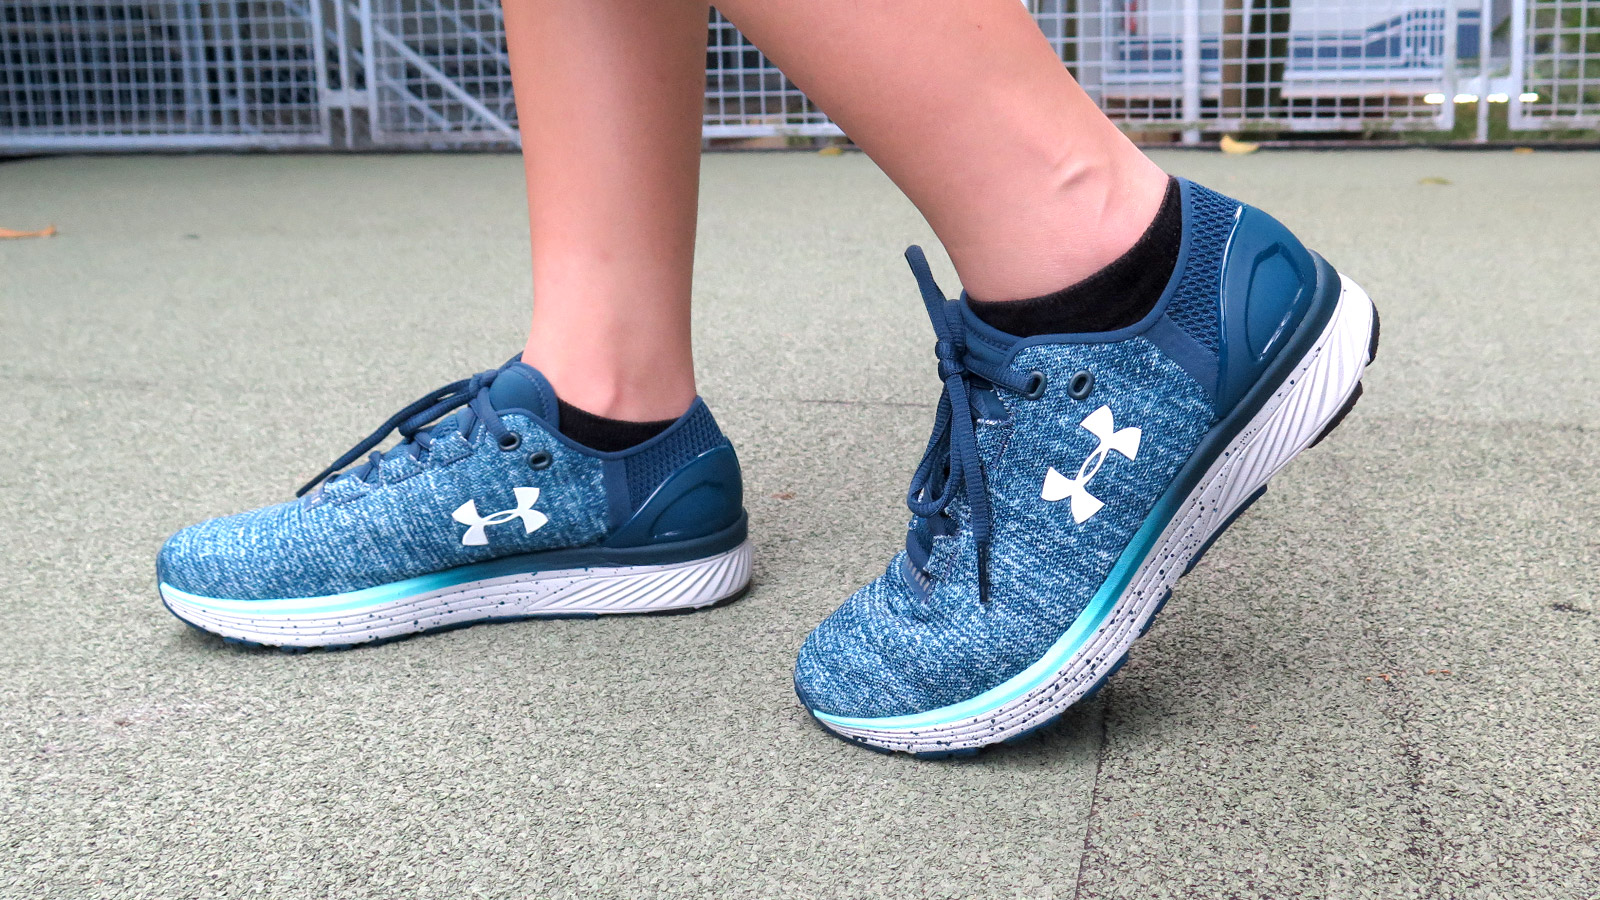 Under Armour Charged Bandit 3: Are You